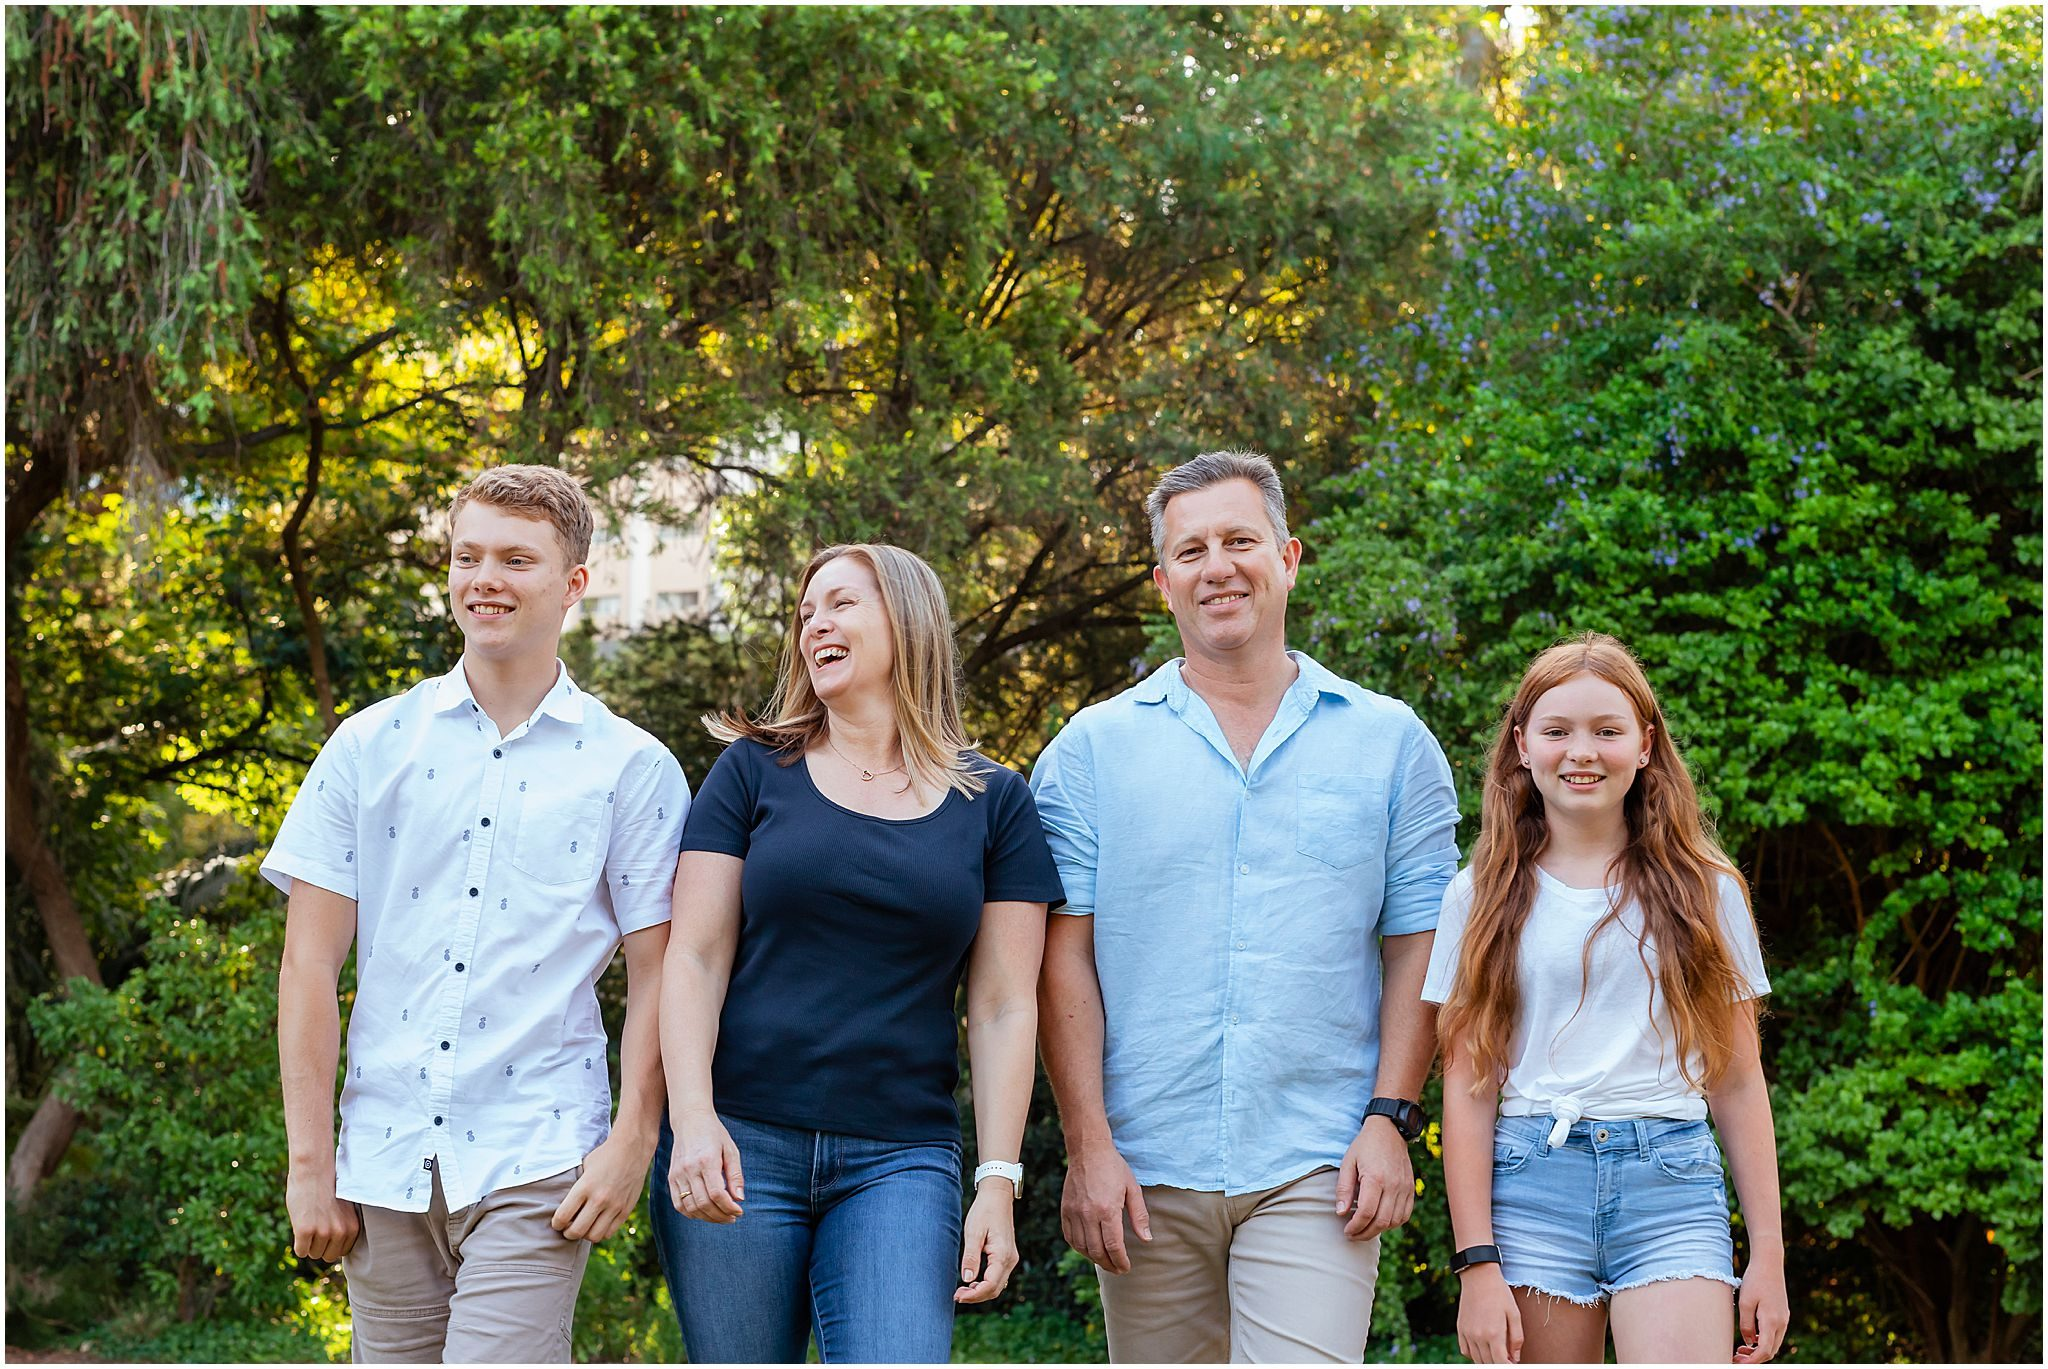 Family photography at South Perth foreshore with WhiteJasmin Photography